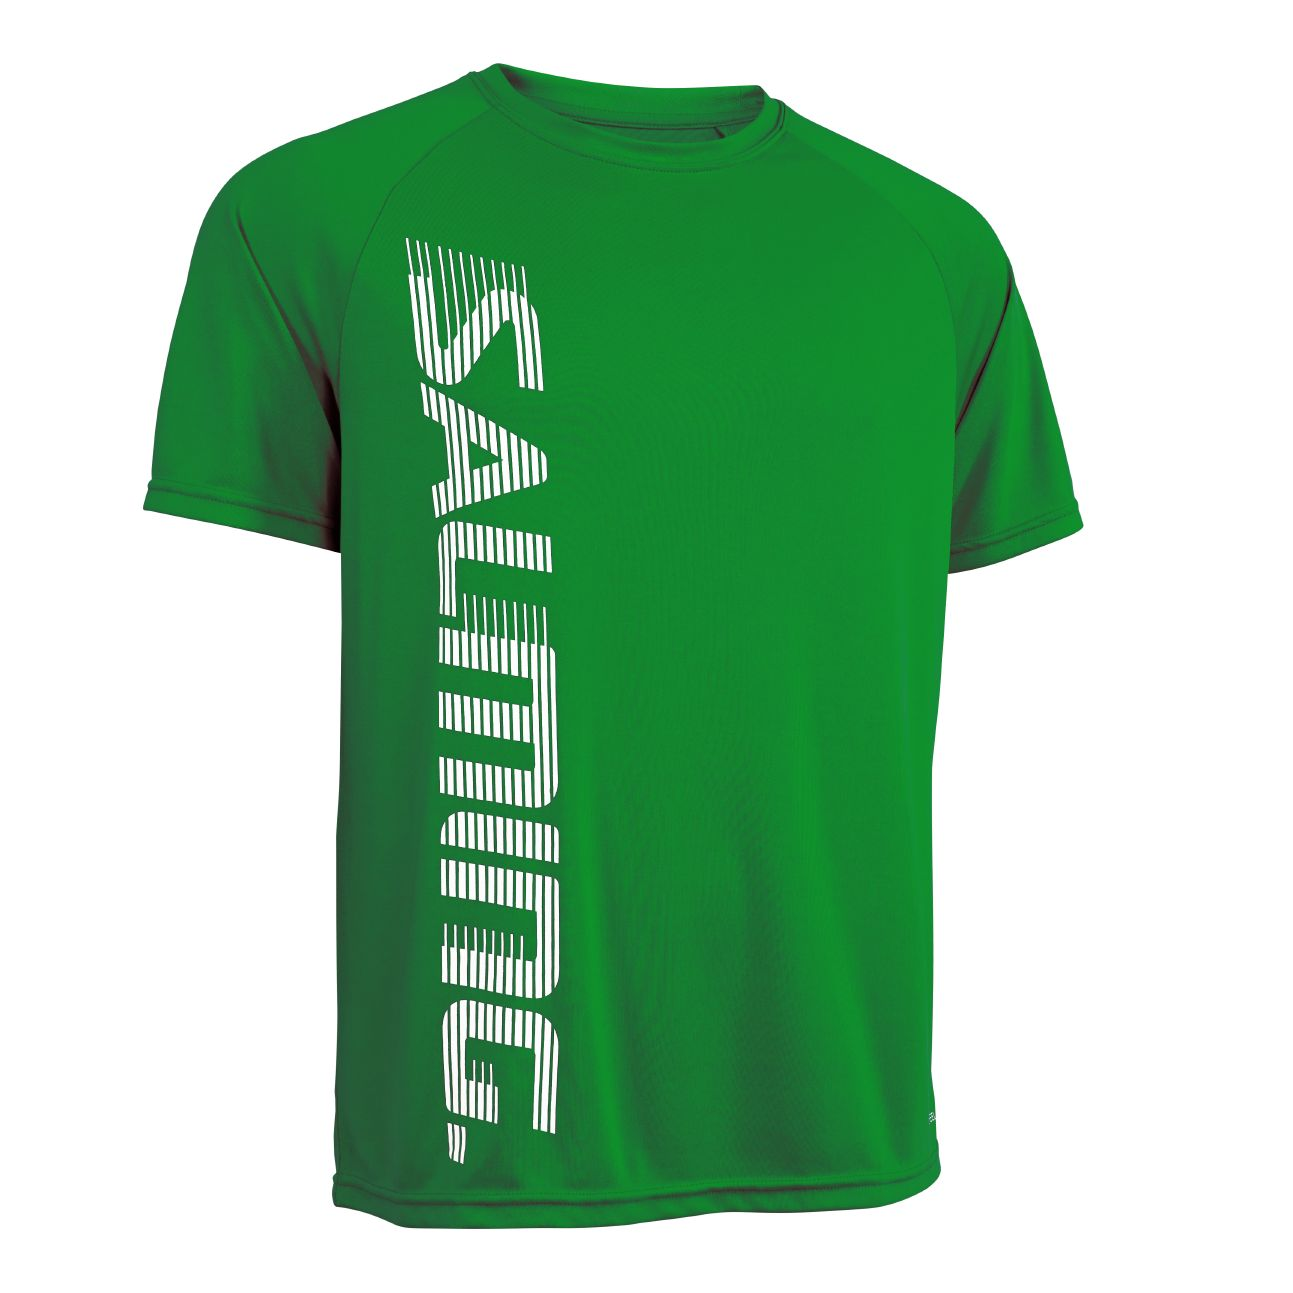 Salming Training Tee 2.0 Modrá, XXL